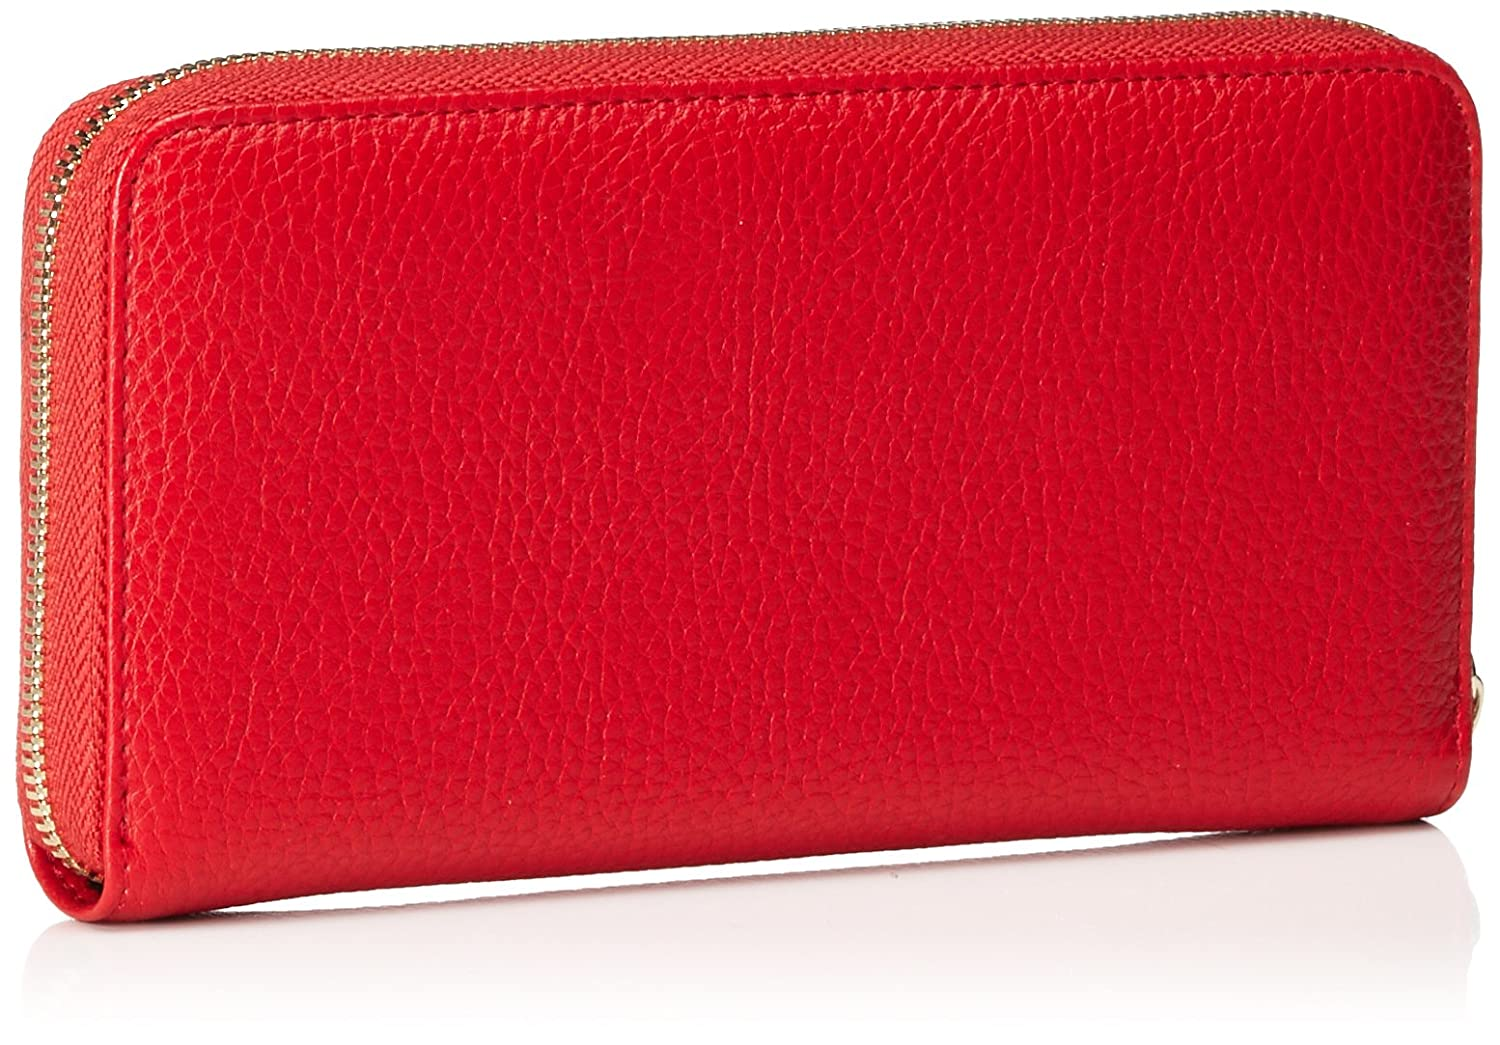 Women es Red Christian y Zapatos 9i08 rouge Lacroix Mcl8796 bolsos Wallet Amazon 5n6BF8awq